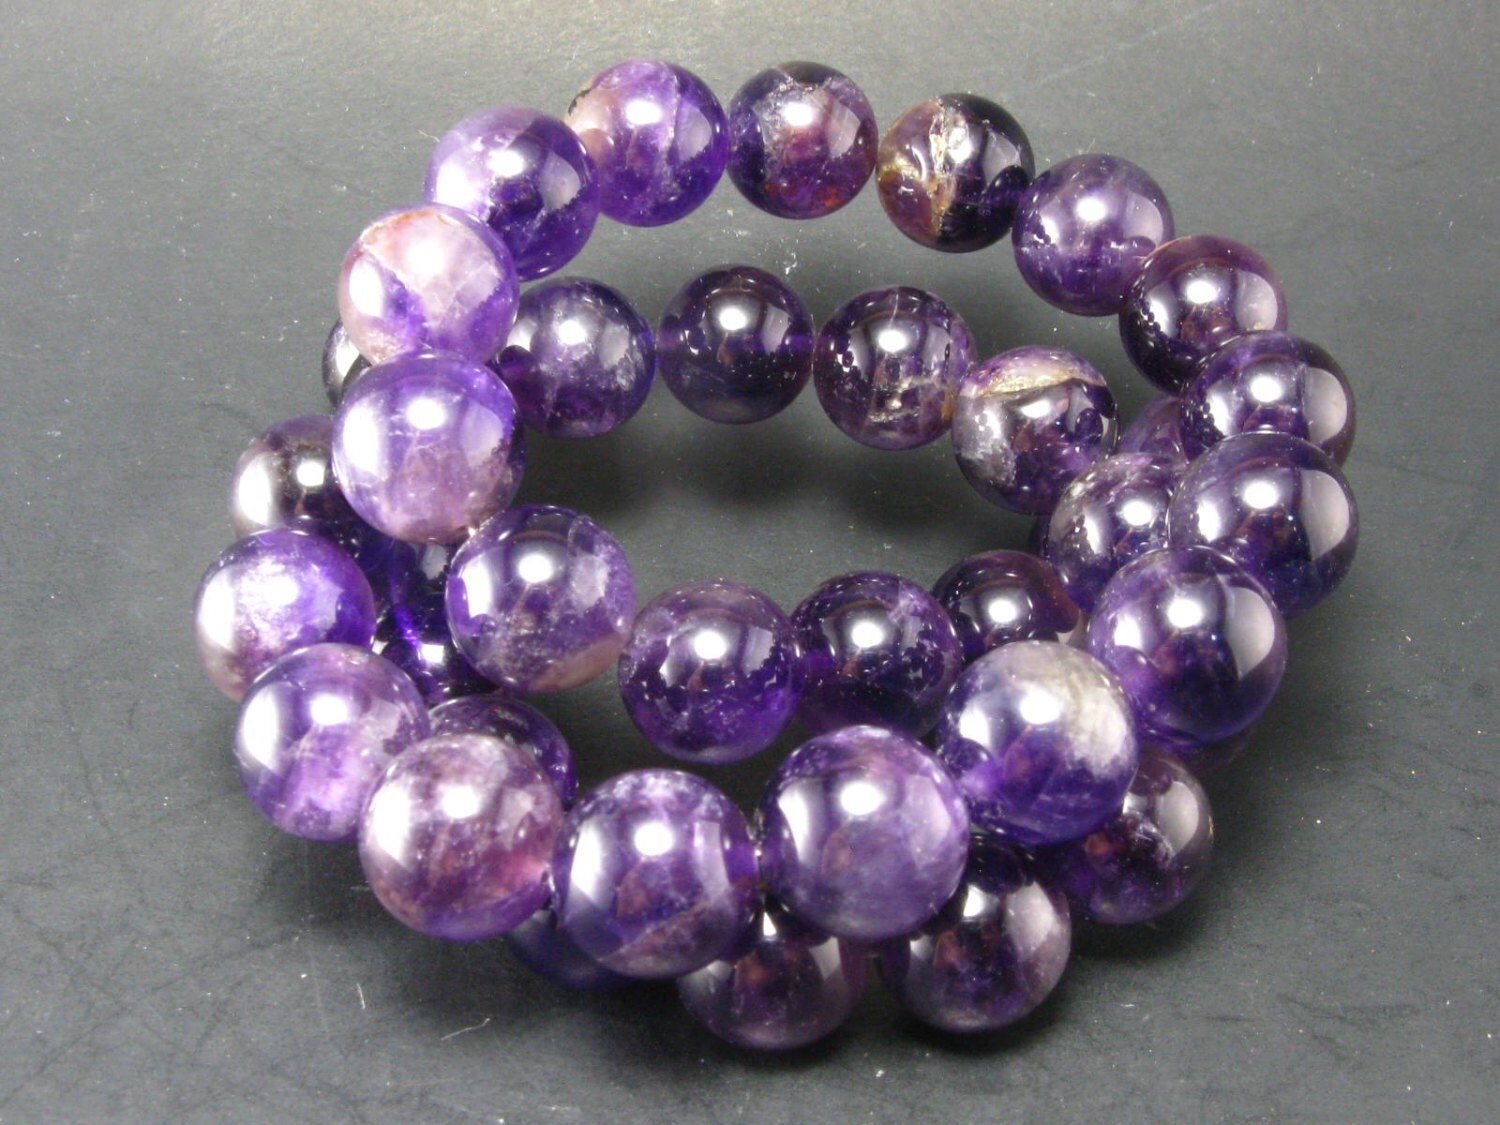 Auralite 23 Amethyst Necklace From Canada 19